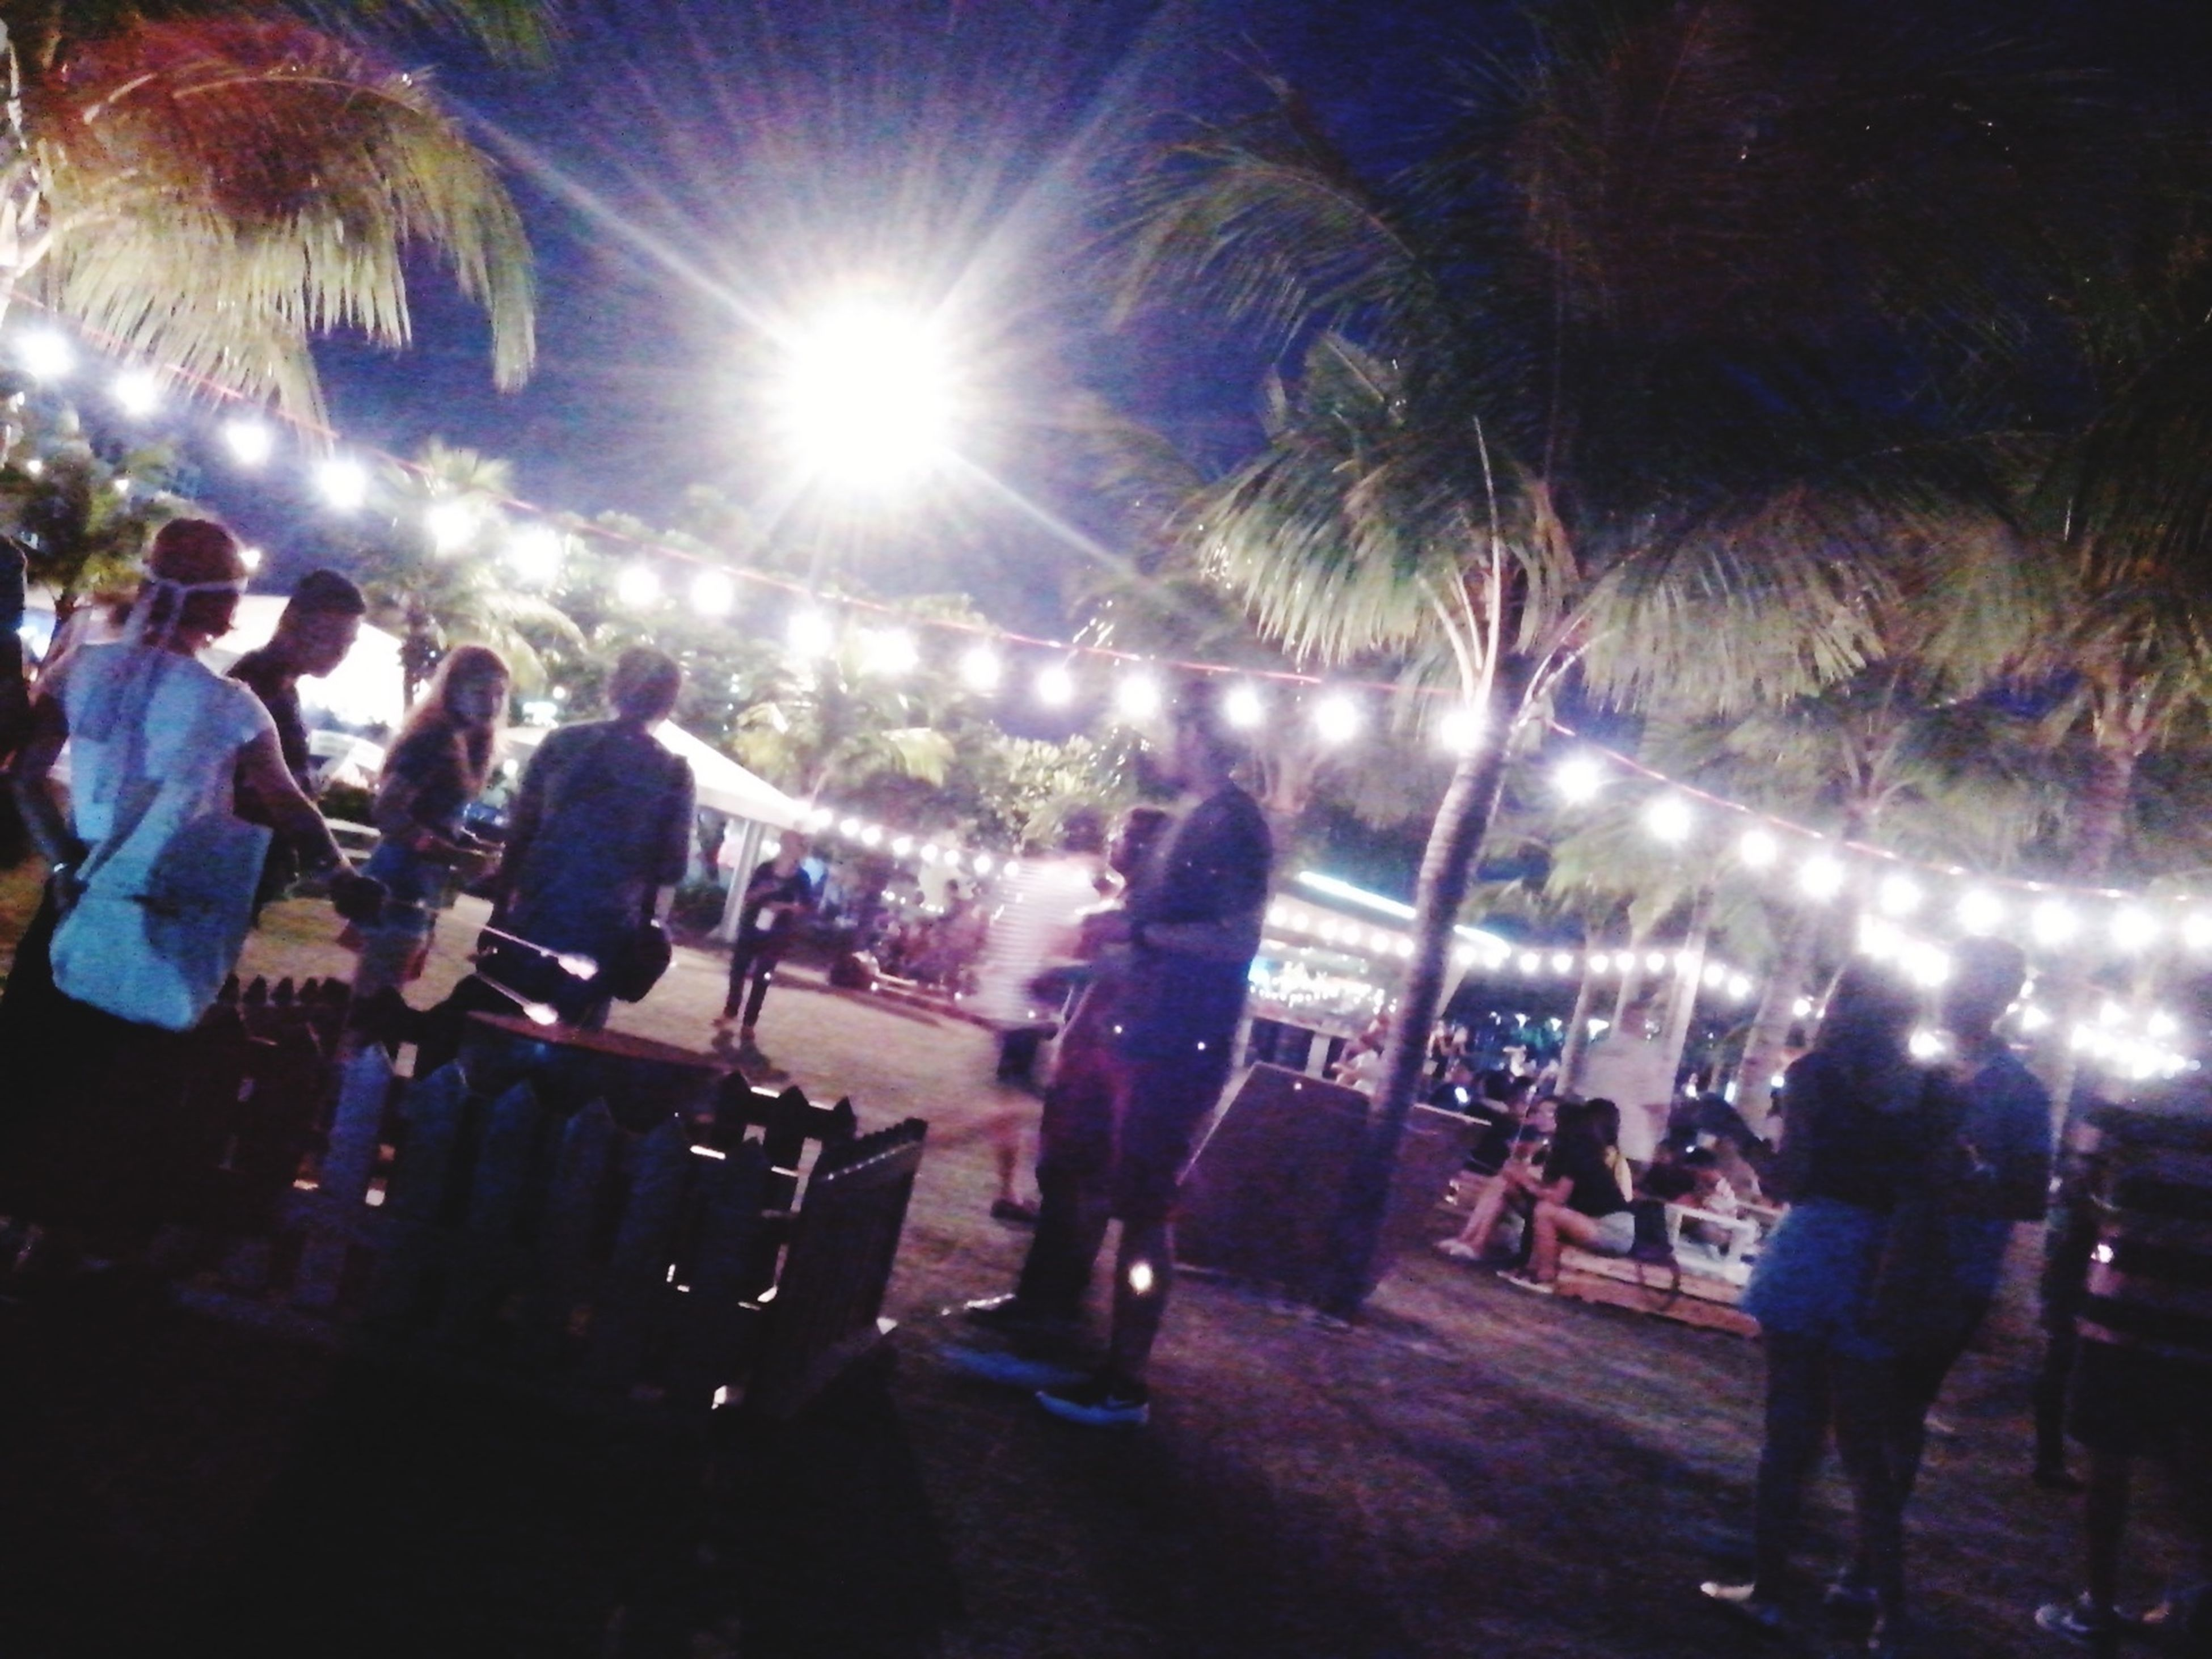 large group of people, lifestyles, leisure activity, crowd, person, men, illuminated, enjoyment, arts culture and entertainment, night, mixed age range, tree, celebration, event, city life, fun, street, togetherness, lighting equipment